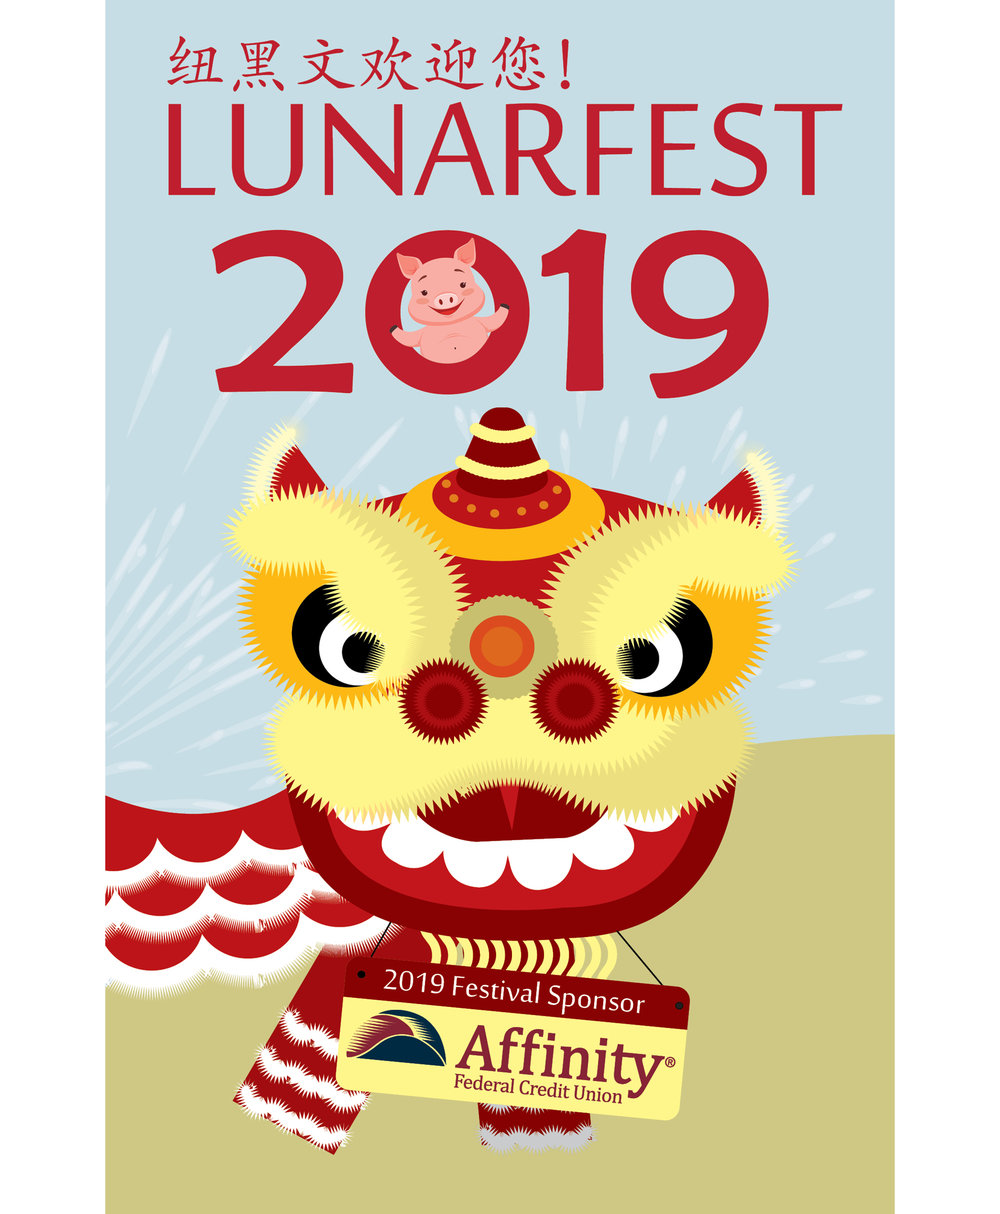 See the Lunarfest 2019 Program -